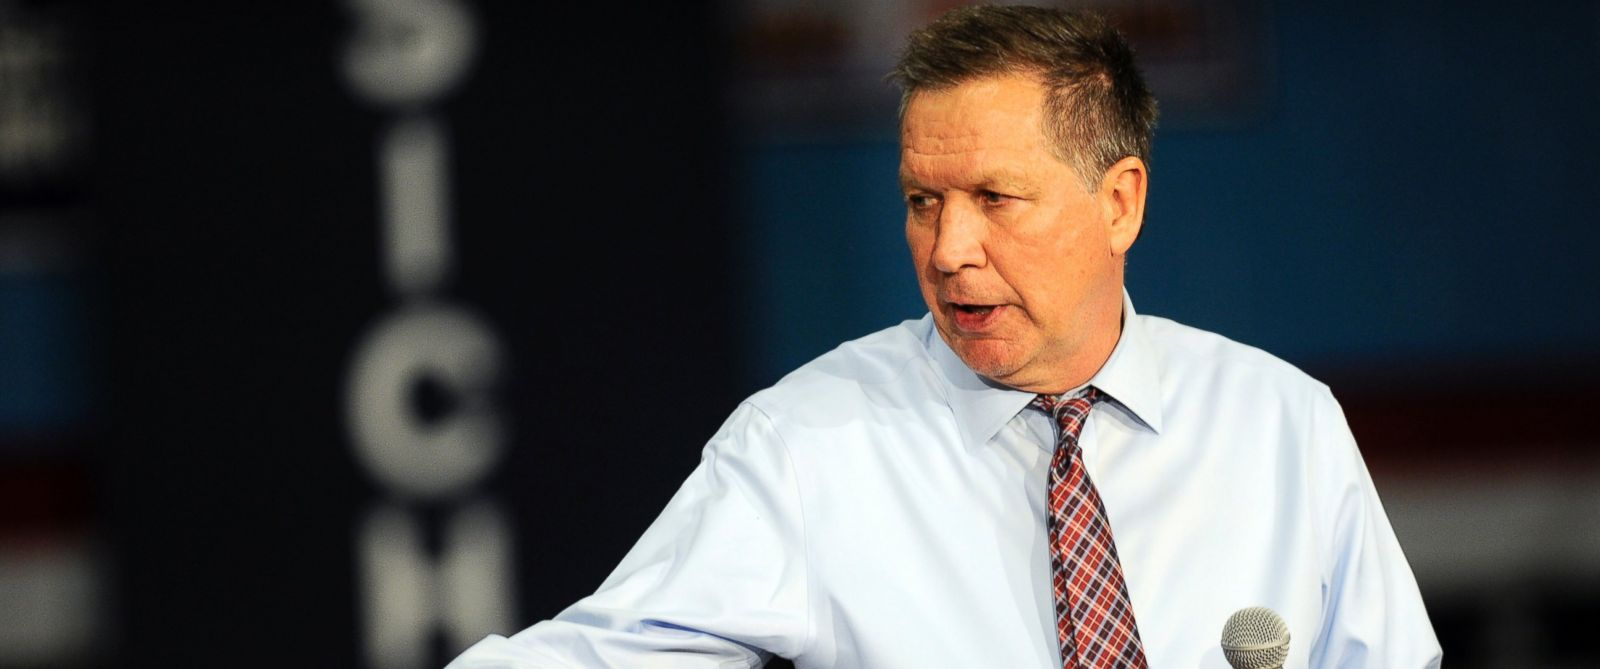 PHOTO: Republican presidential candidate, Ohio Gov. John Kasich speaks during a campaign event at the La Salle Institute on April 11, 2016, in Troy, N.Y.